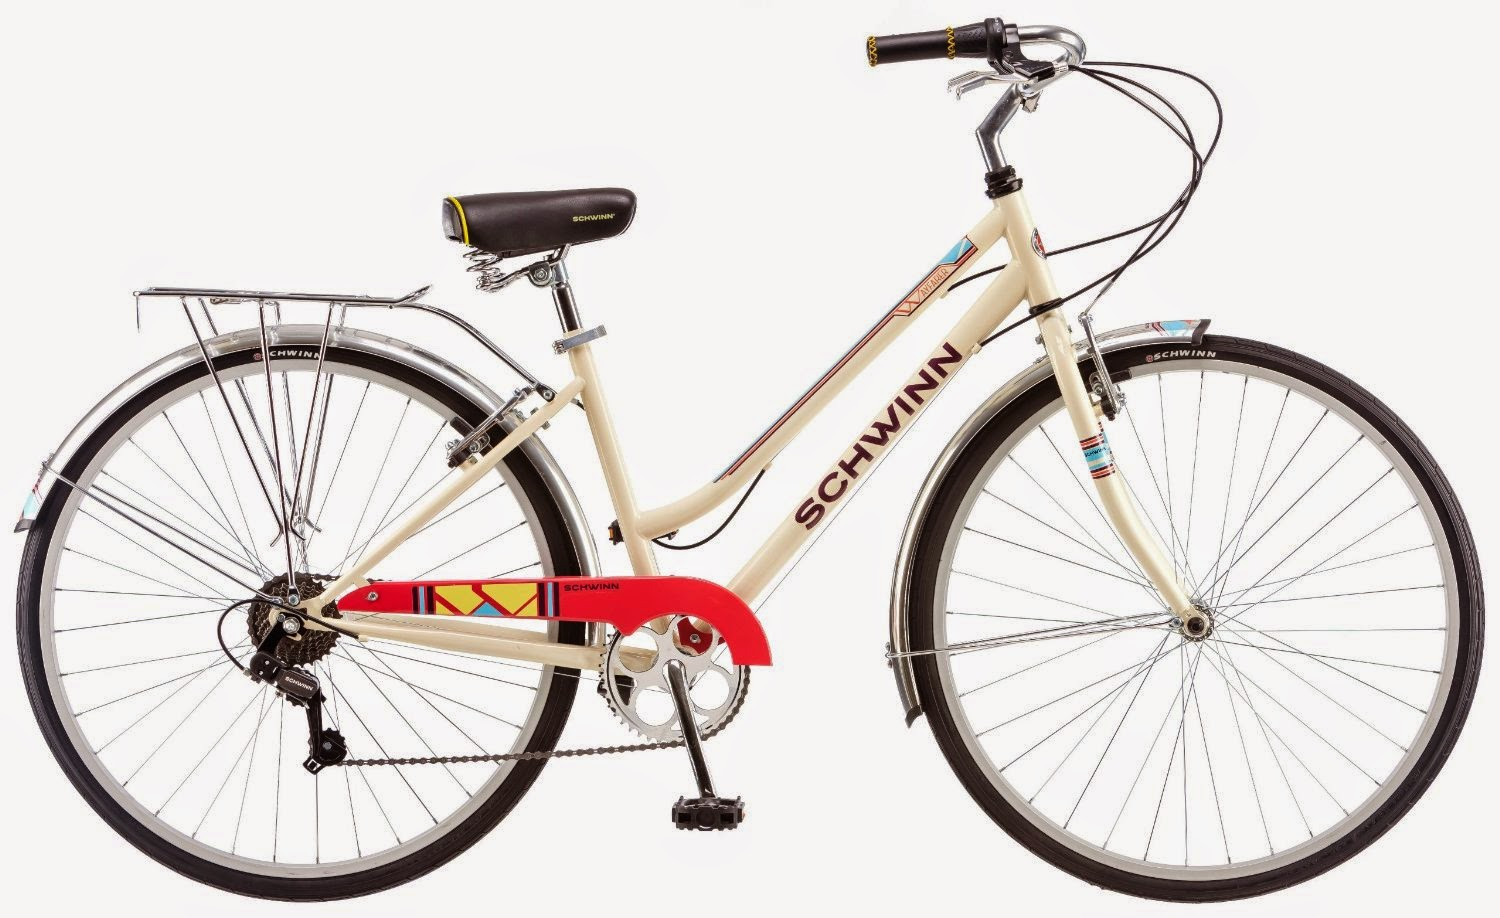 Schwinn Women's Wayfarer 700c Bicycle, review, hybrid bike for commuting, town, cruising & leisure cycling, 7-speed SRAM twist shifters, plus review of Men's Schwinn Wayfarer